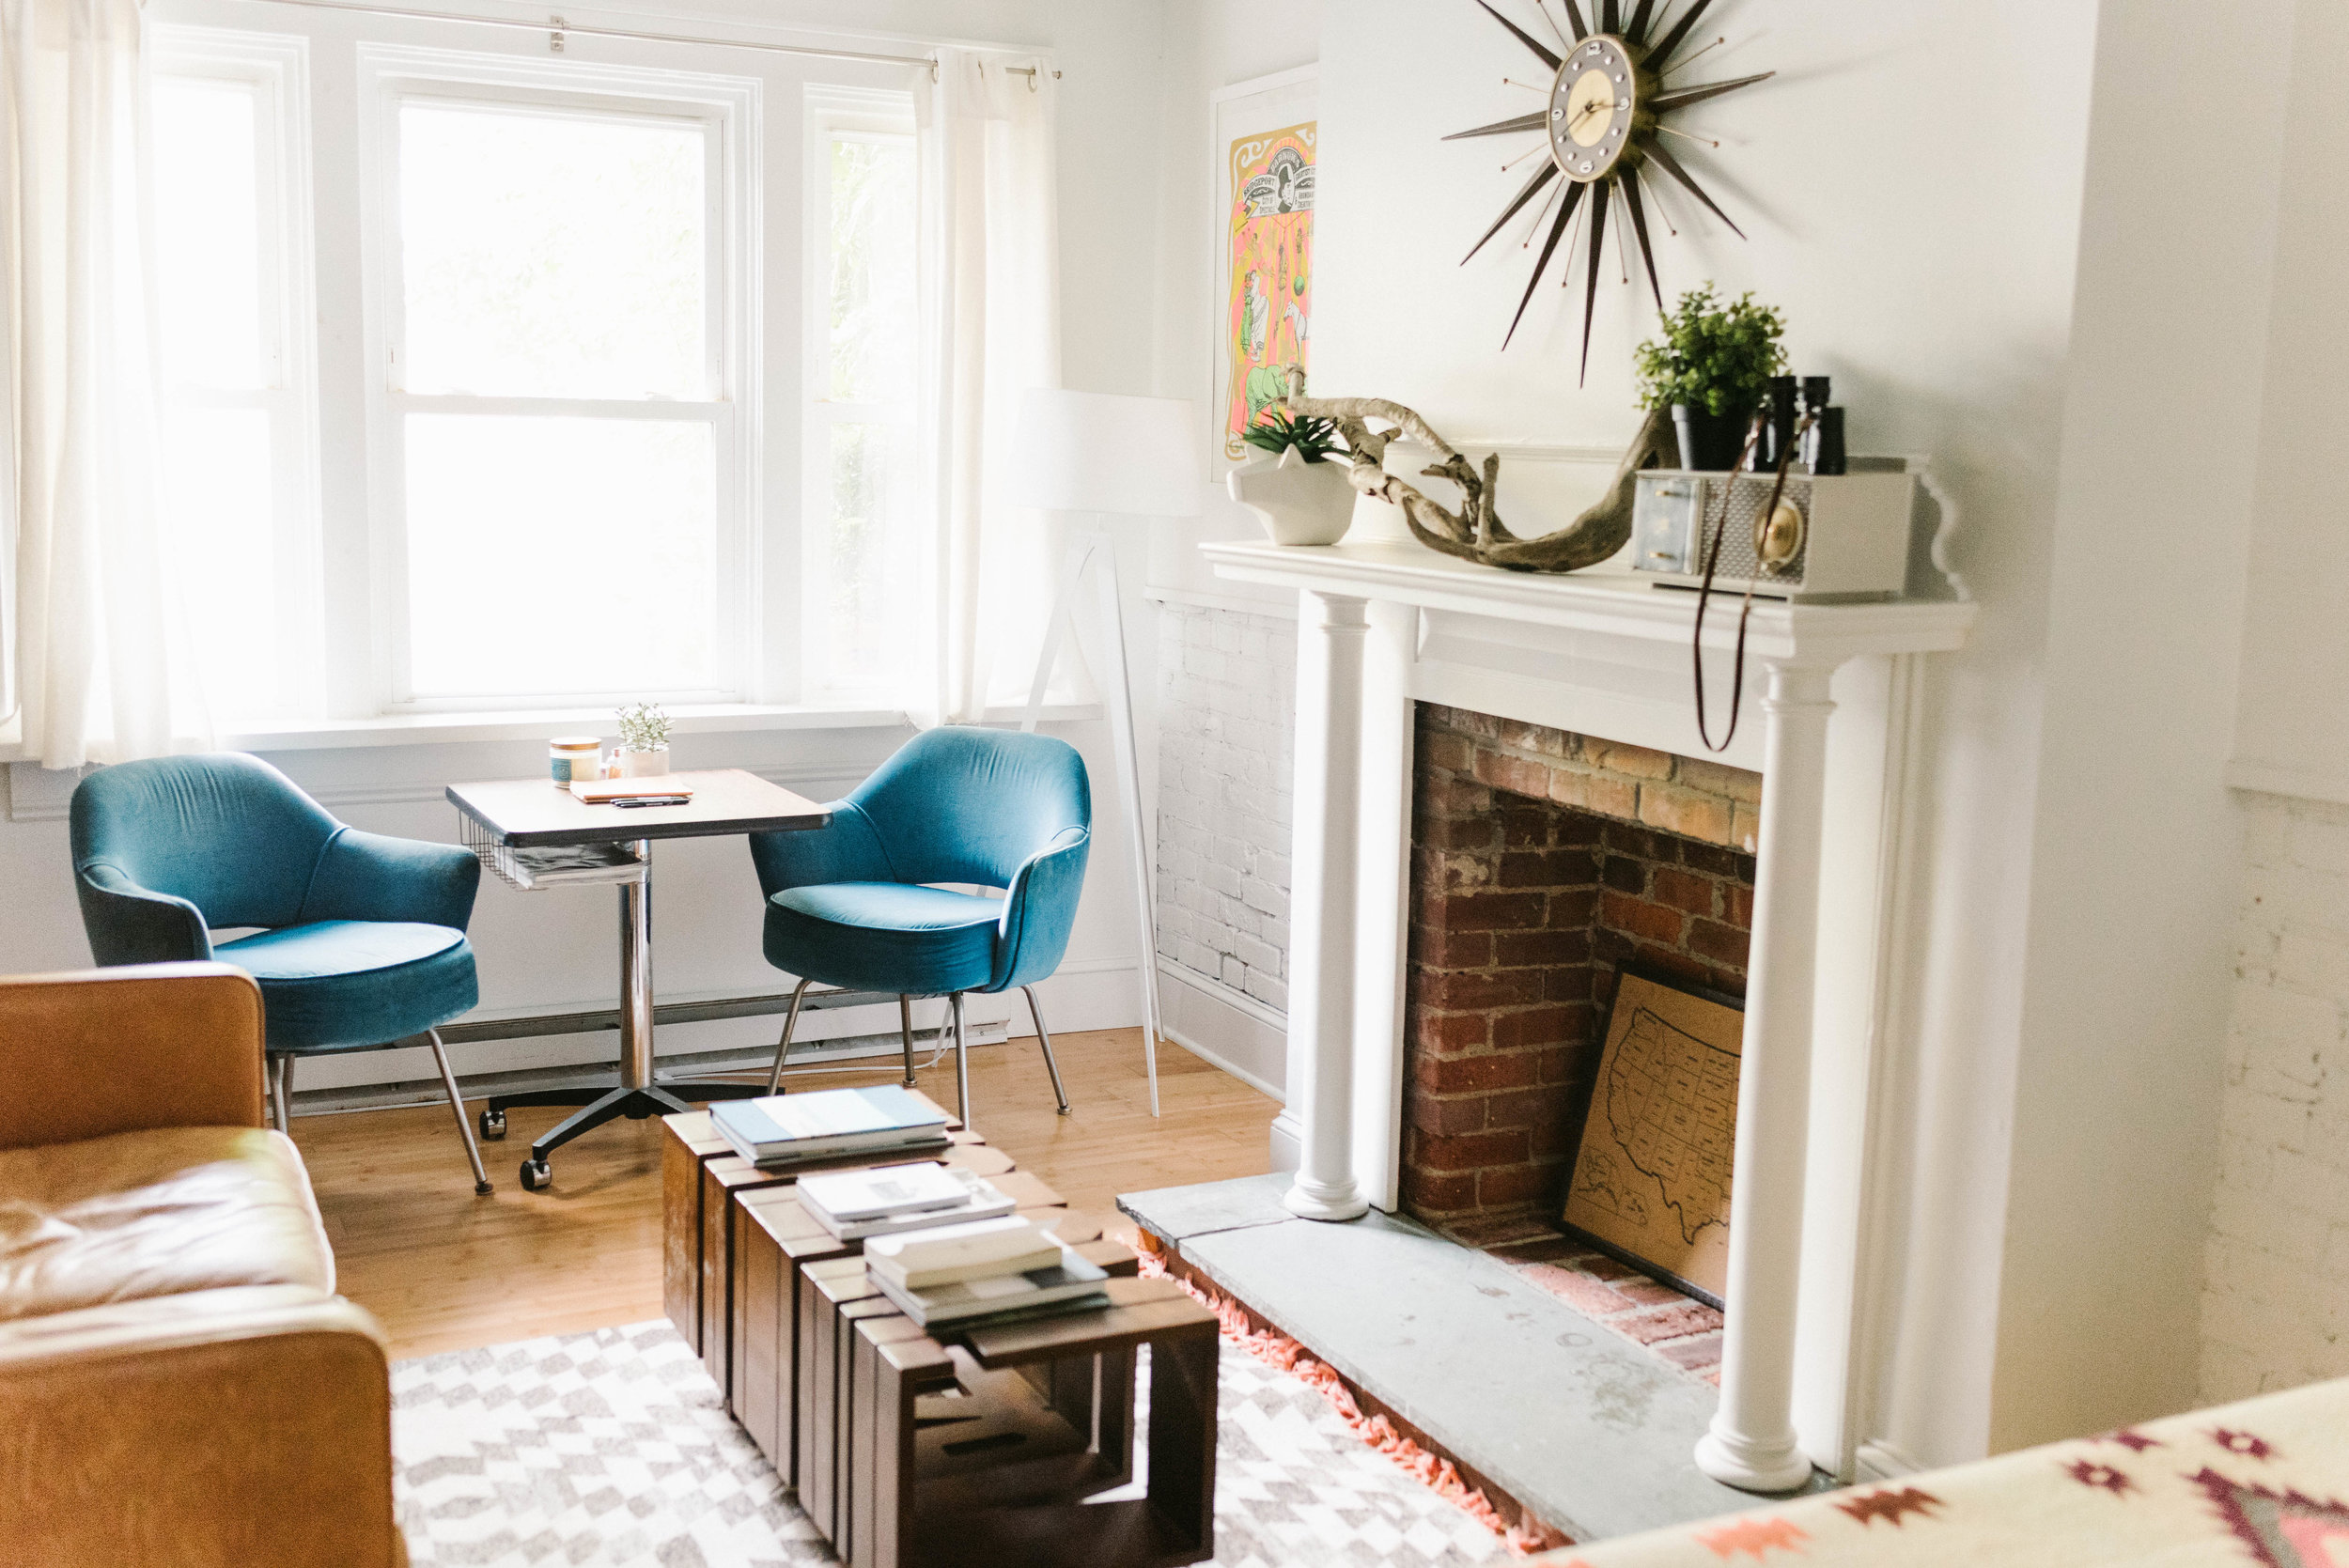 Where to Stay in Bridgeport, Connecticut | Maid + Butler